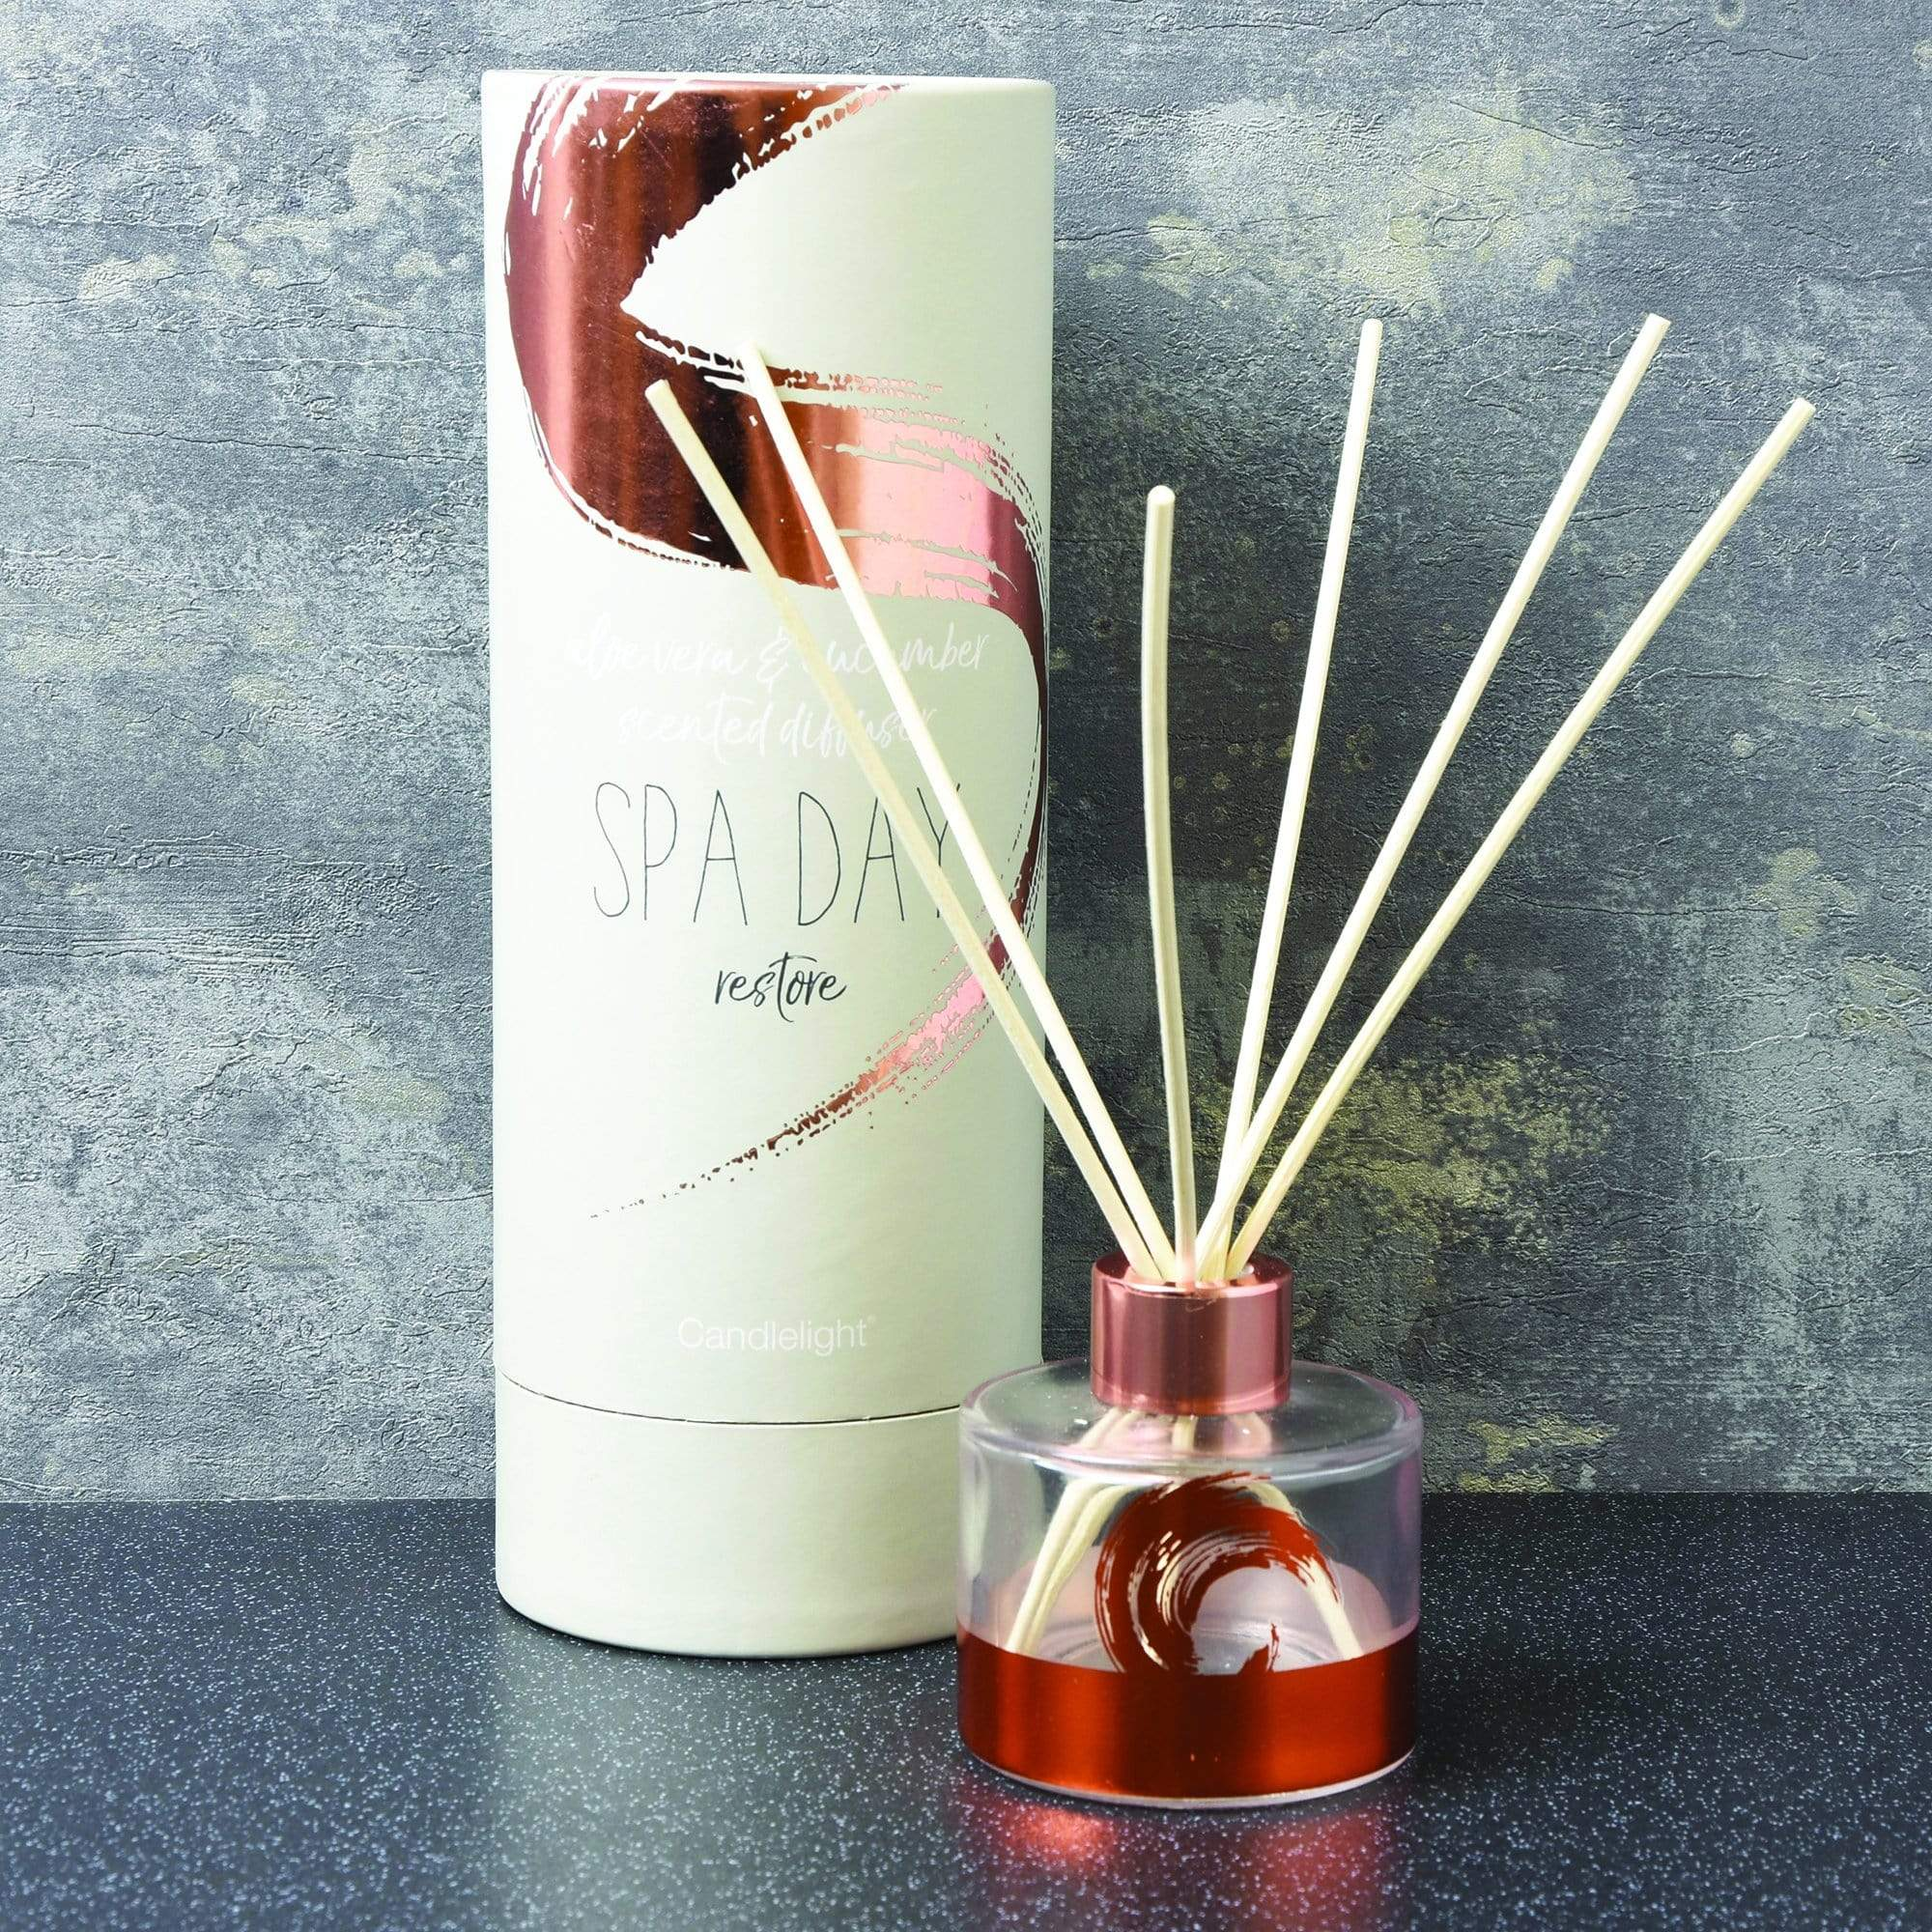 Candlelight Home Reed Diffuser Candlelight Spa Day Restore Reed Diffuser Aloe Vera & Cucumber Scent 150ml 6PK